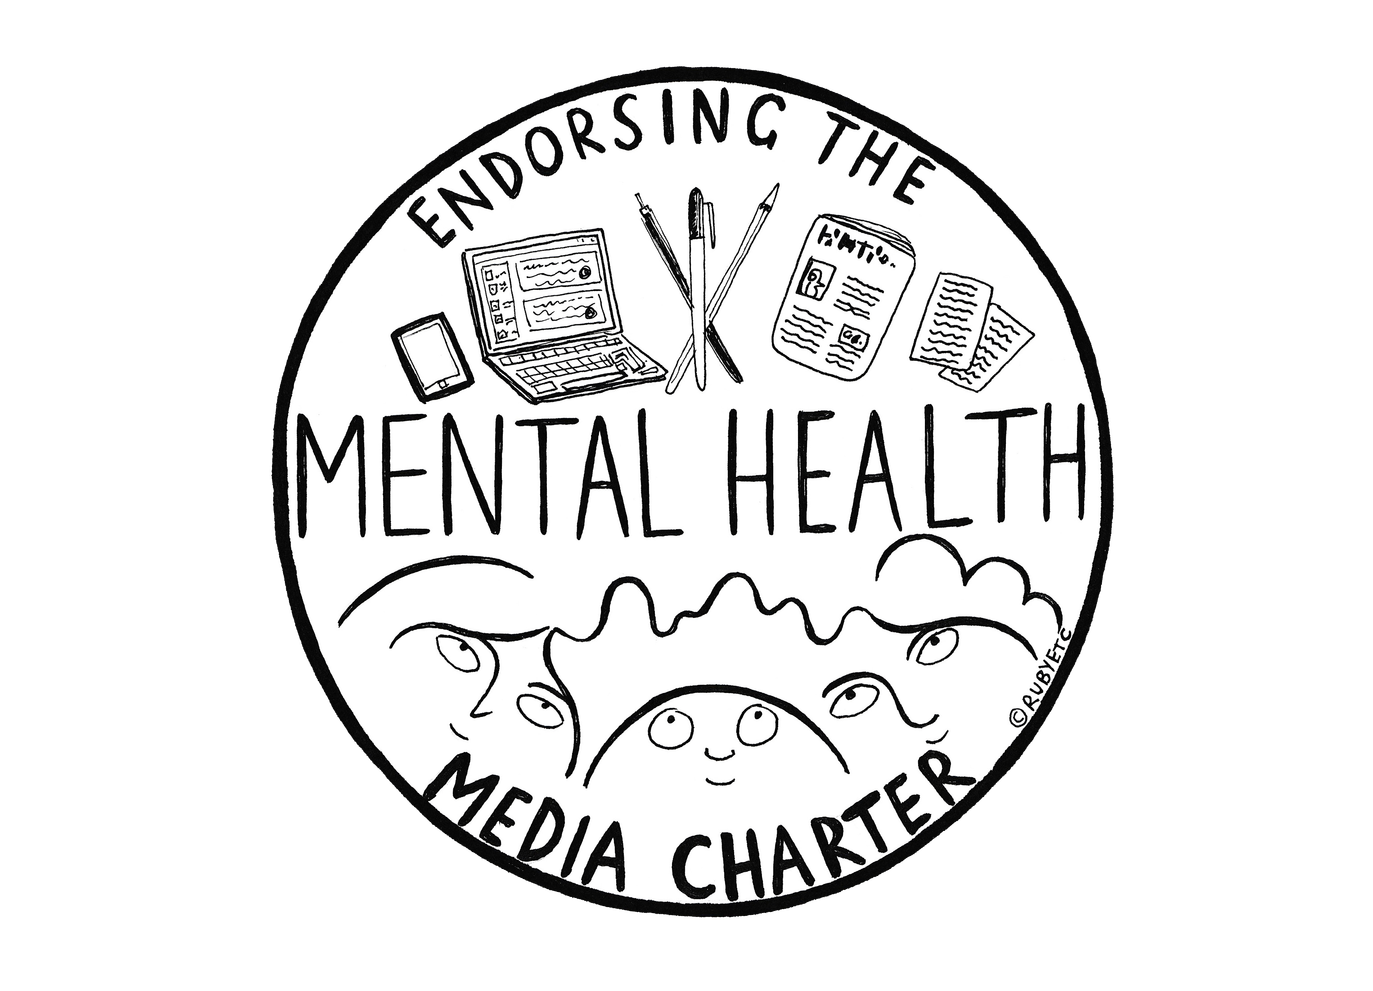 Mental Health Media Charter logo